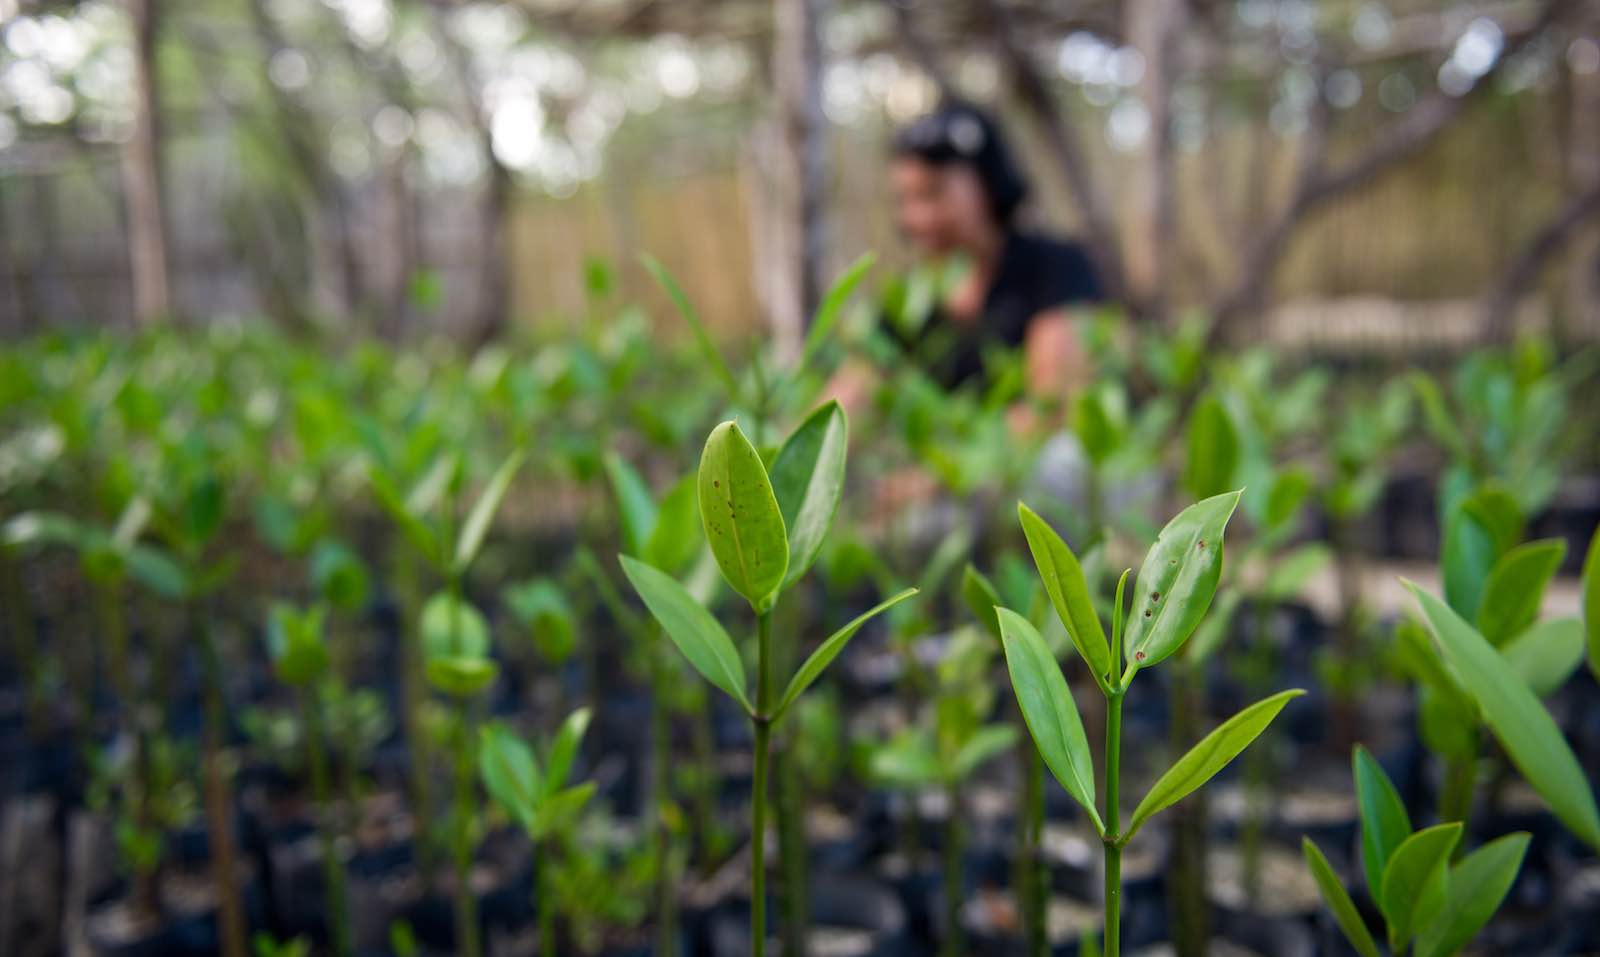 Mangrove seedlings in the Philippines to help hold back the tide (Photo: ADB/Flickr)